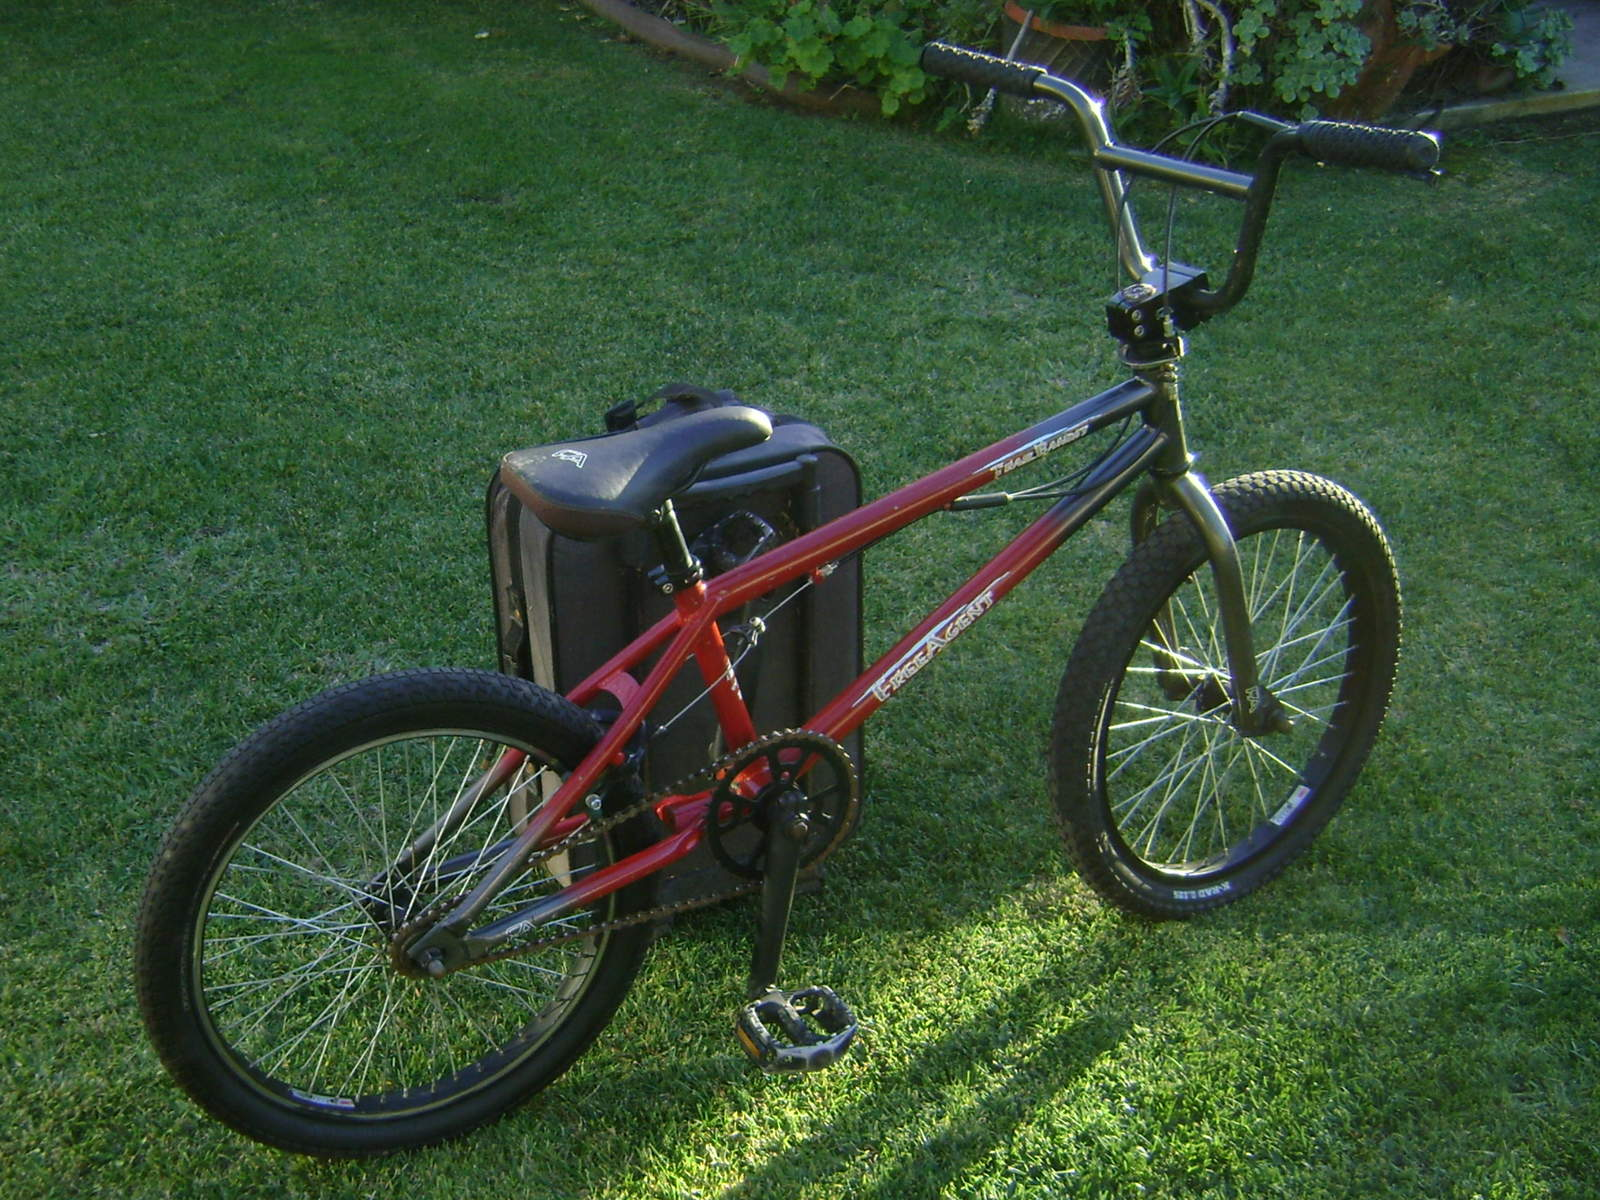 http://uploads.bmxmuseum.com/user-images/6905/dsc000825877902c81.jpg